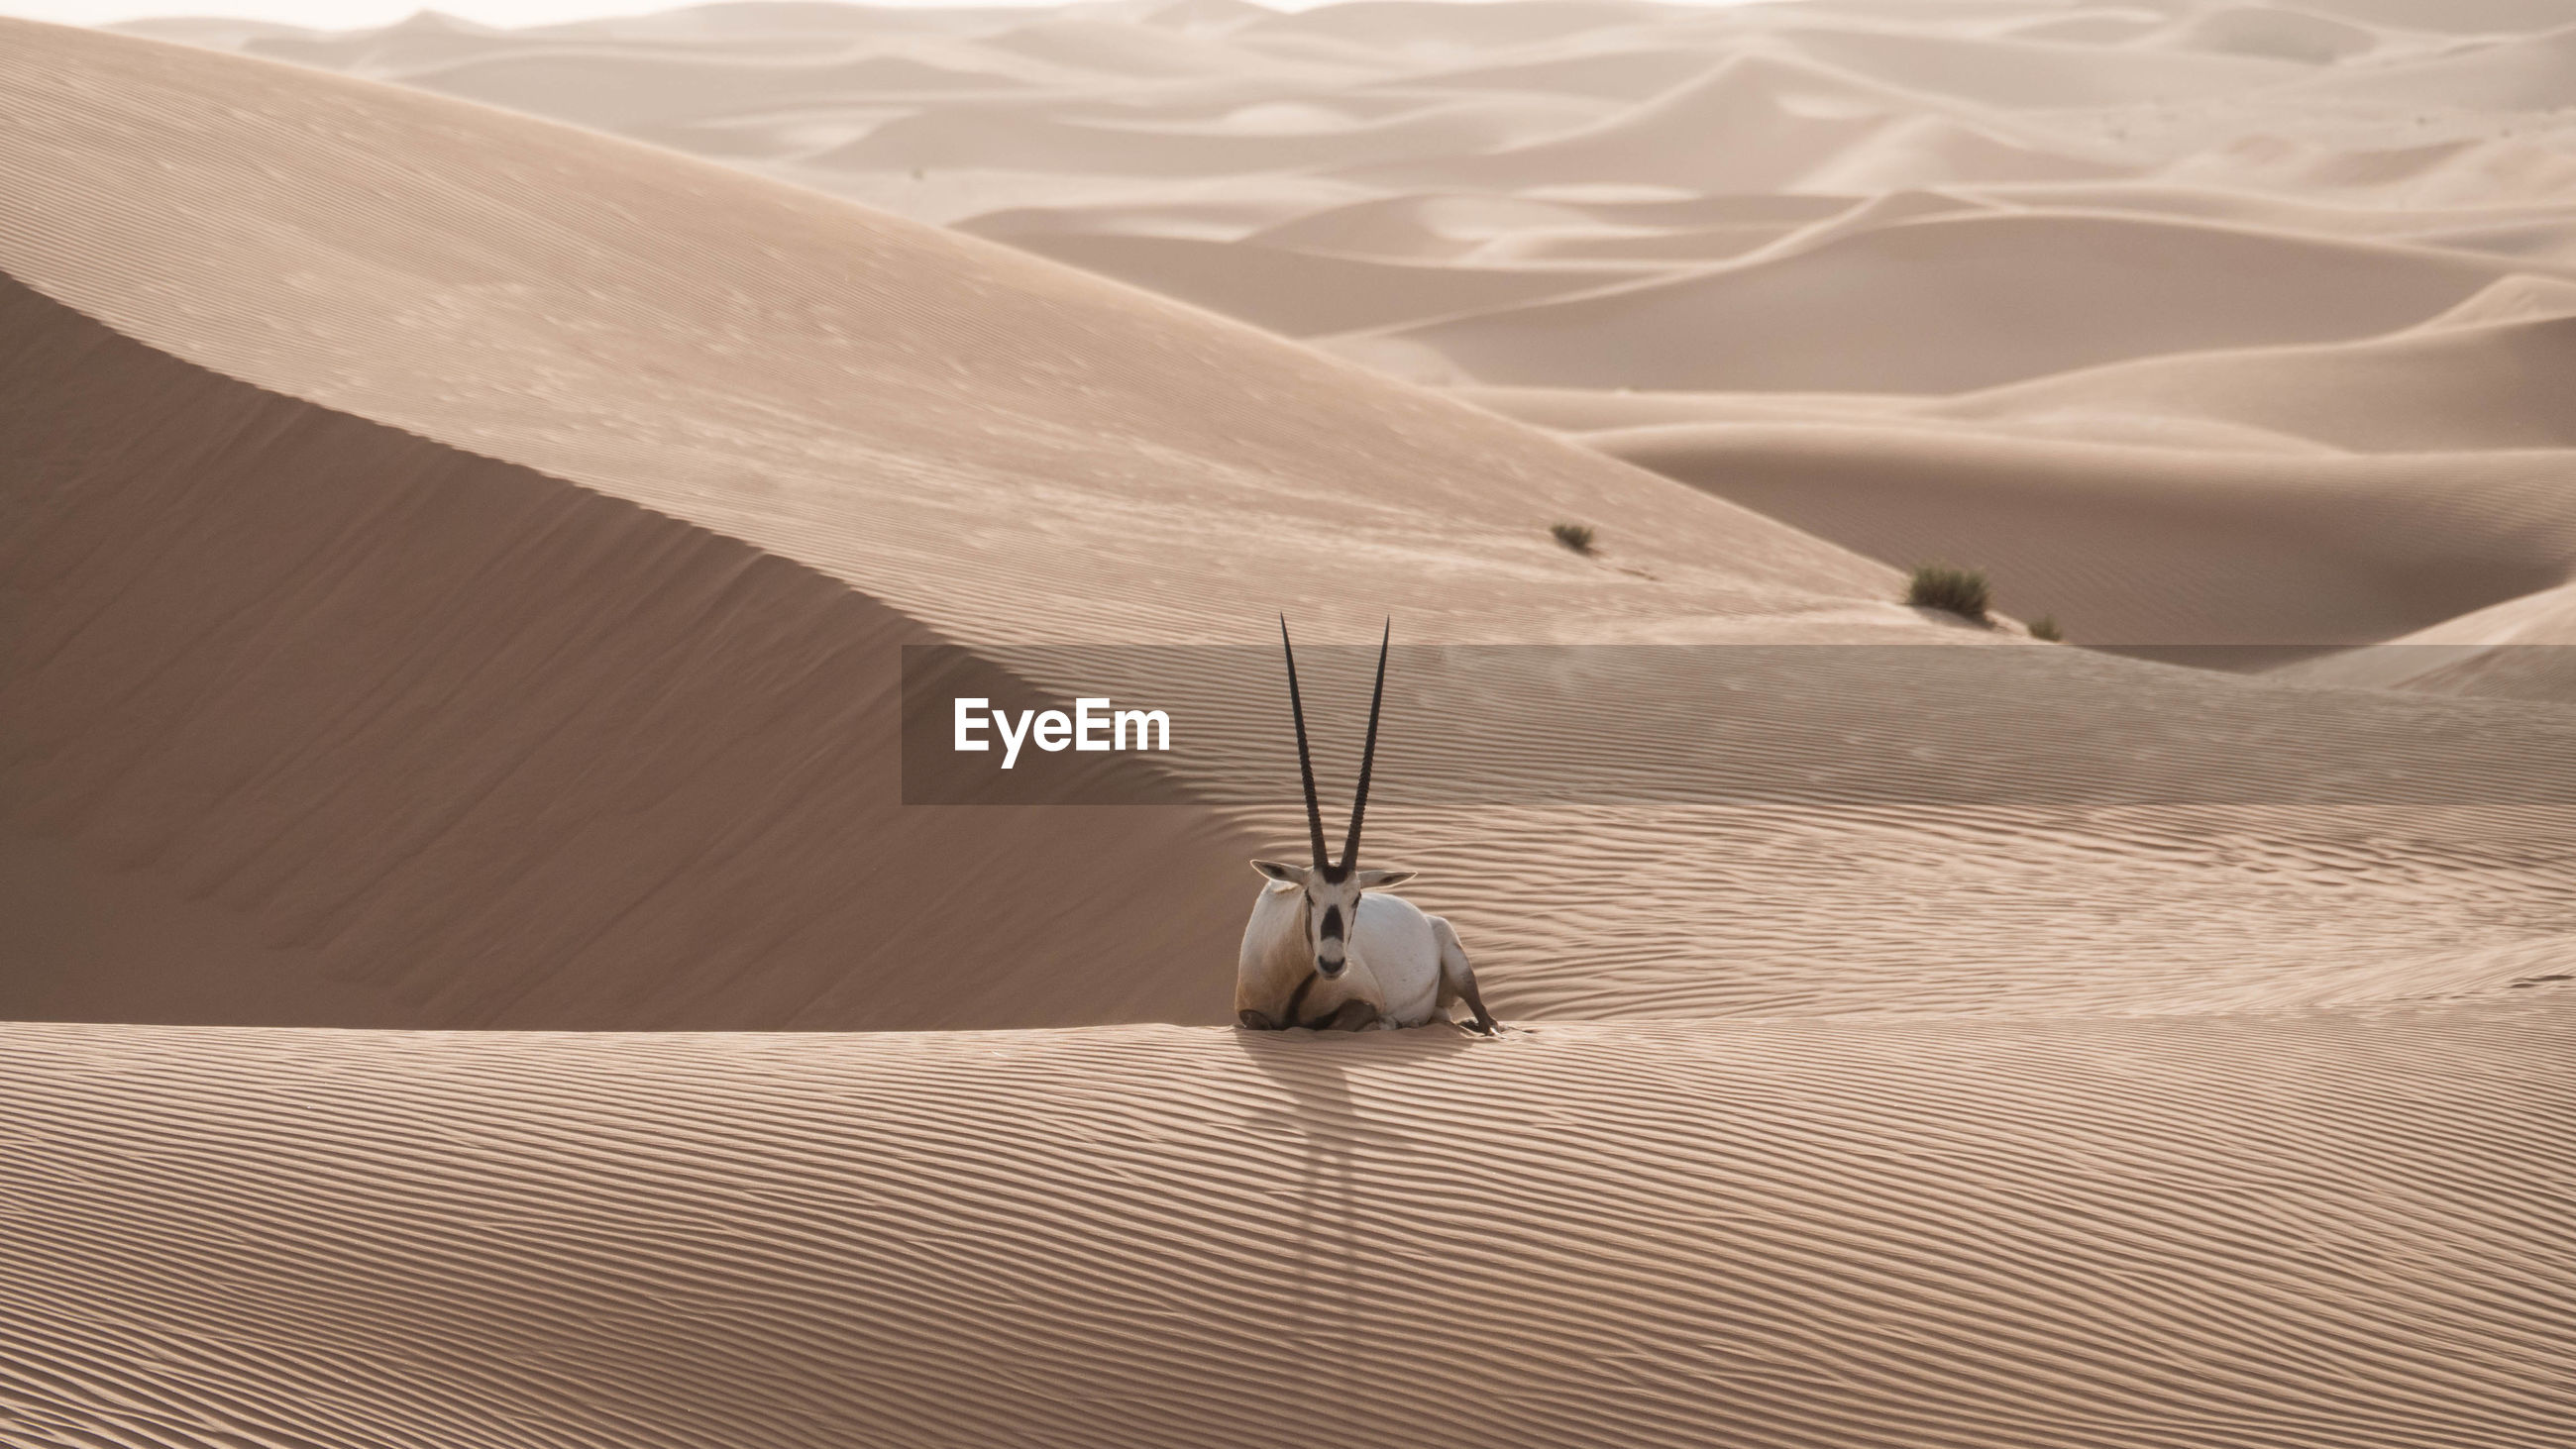 Arabian oryx relaxing on sand dune at desert